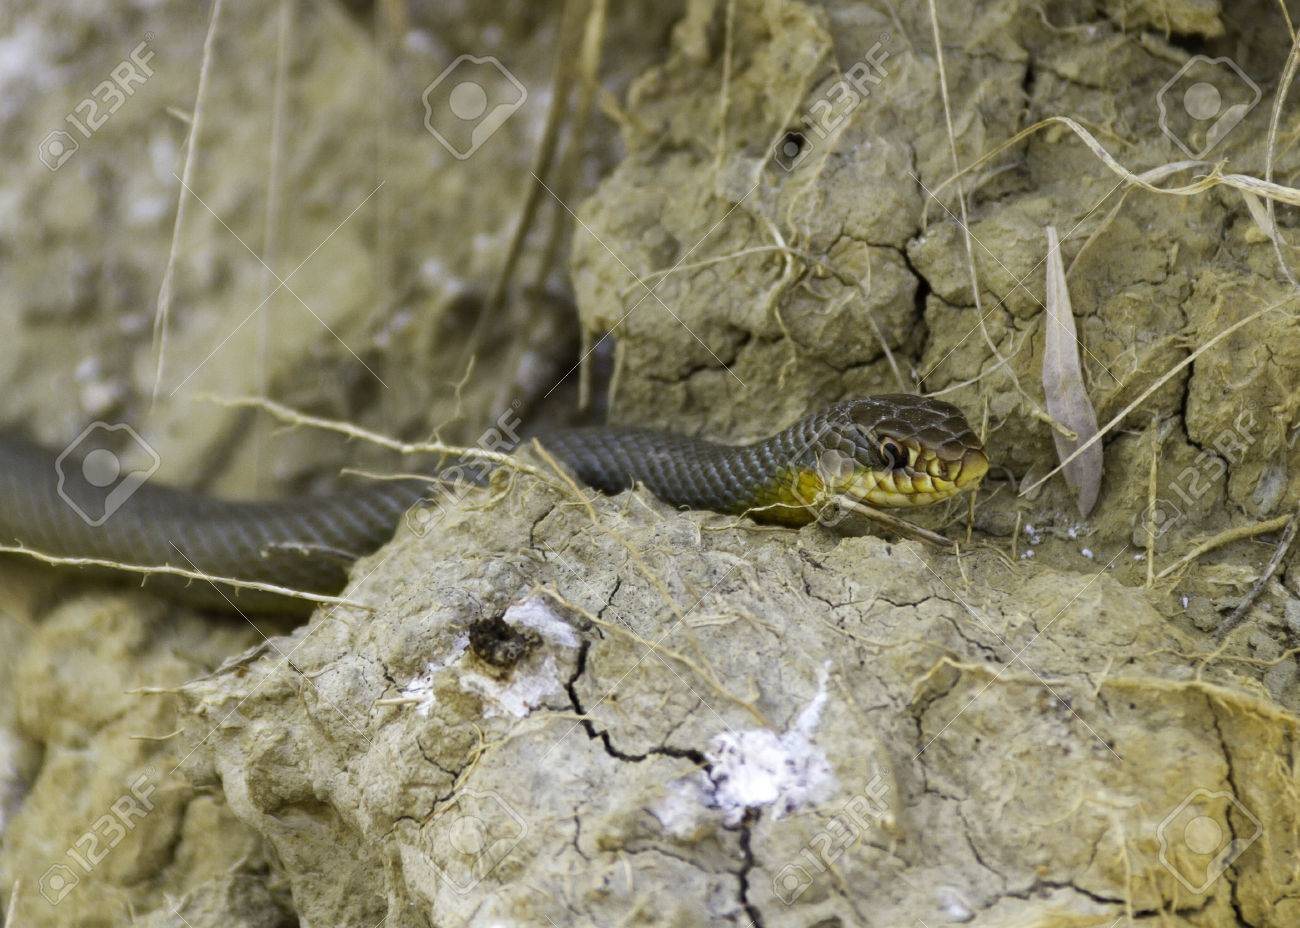 Blue Racer Snake Coluber Constrictor On The Ground Stock Photo